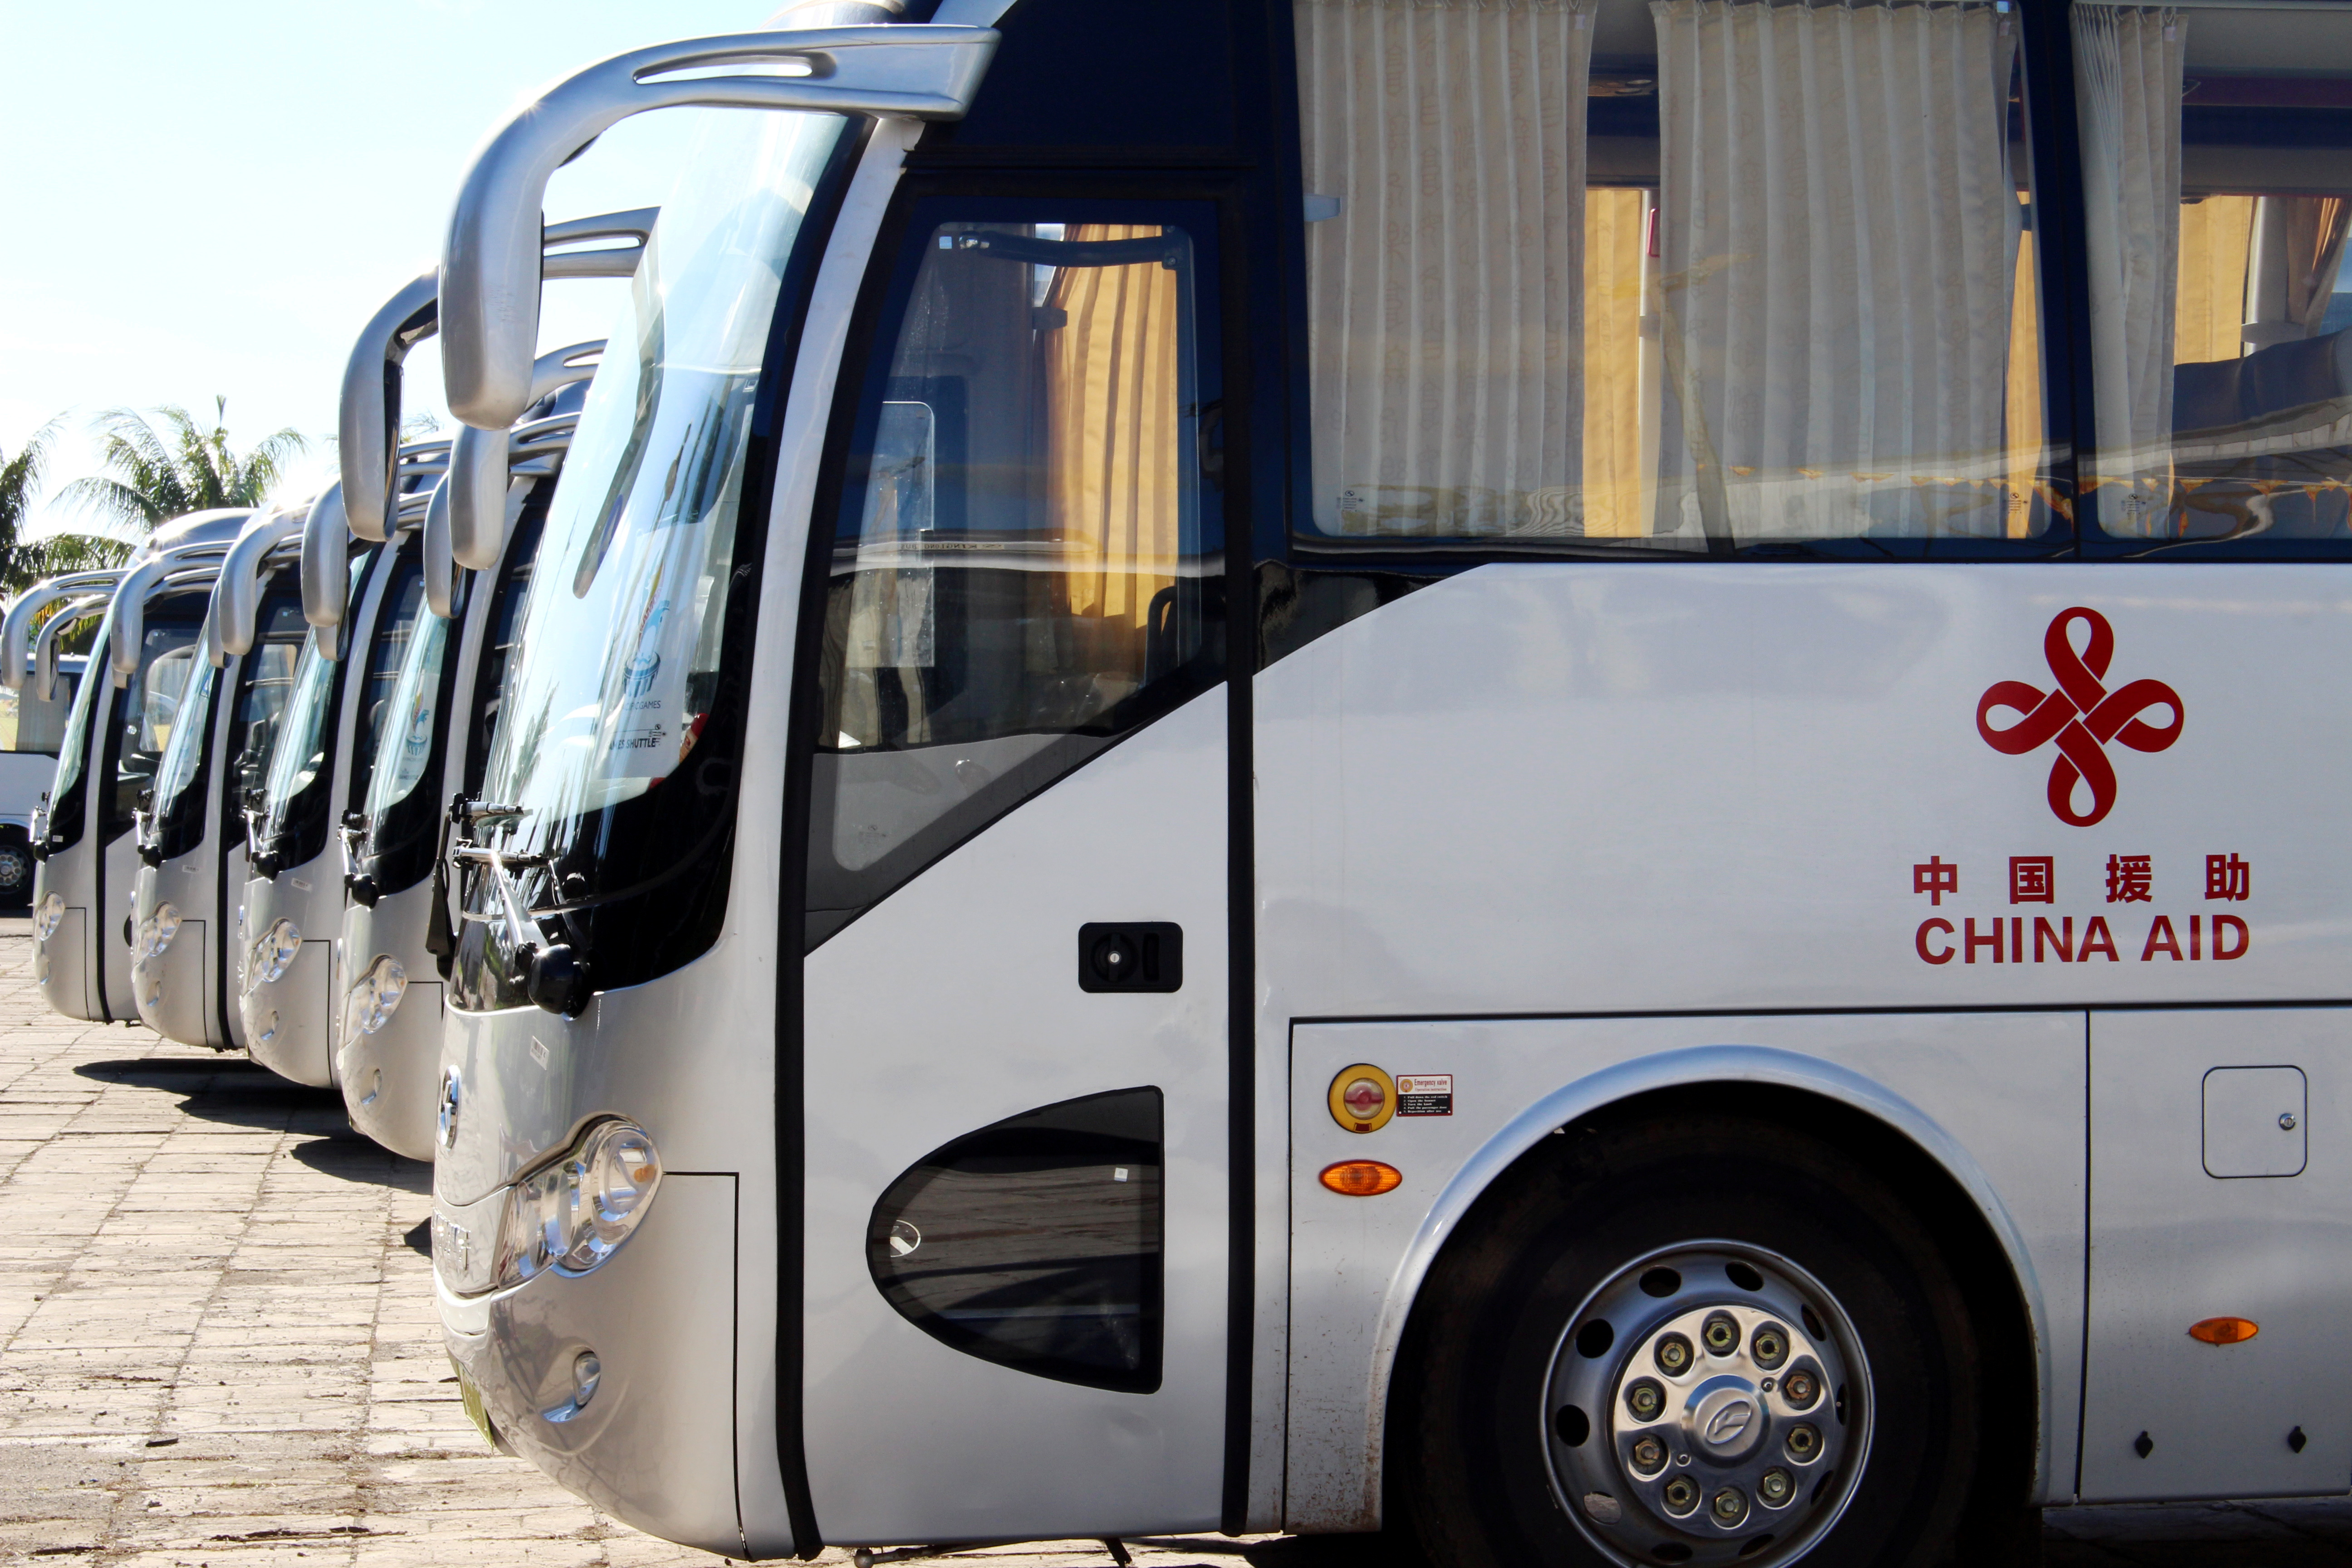 Buses gifted from China for the Pacific Games are parked at a Beijing-refurbished aquatic centre in Apia, Samoa, July 12, 2019. Picture taken July 12, 2019. REUTERS/Jonathan Barrett/File Photo